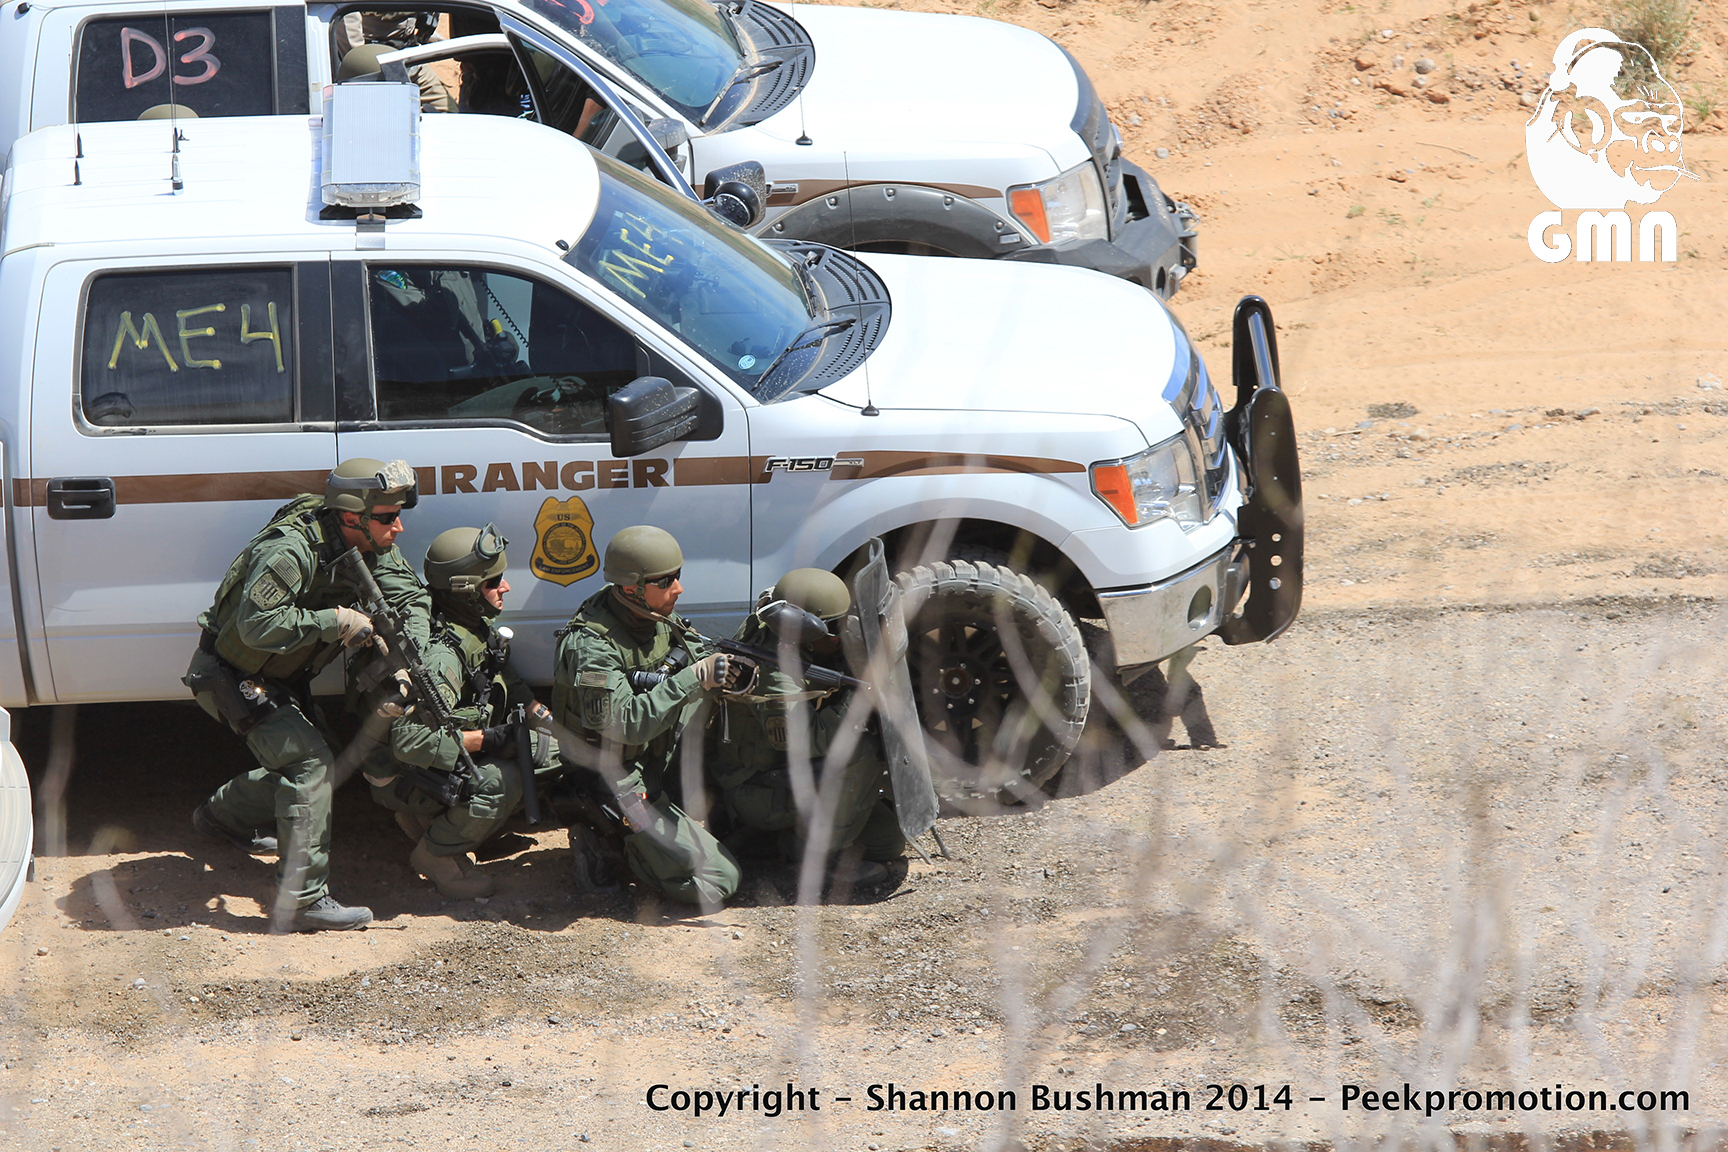 21WIREn-Bundy-Fed-Standoff-April-12-2014-Copyright-GMN